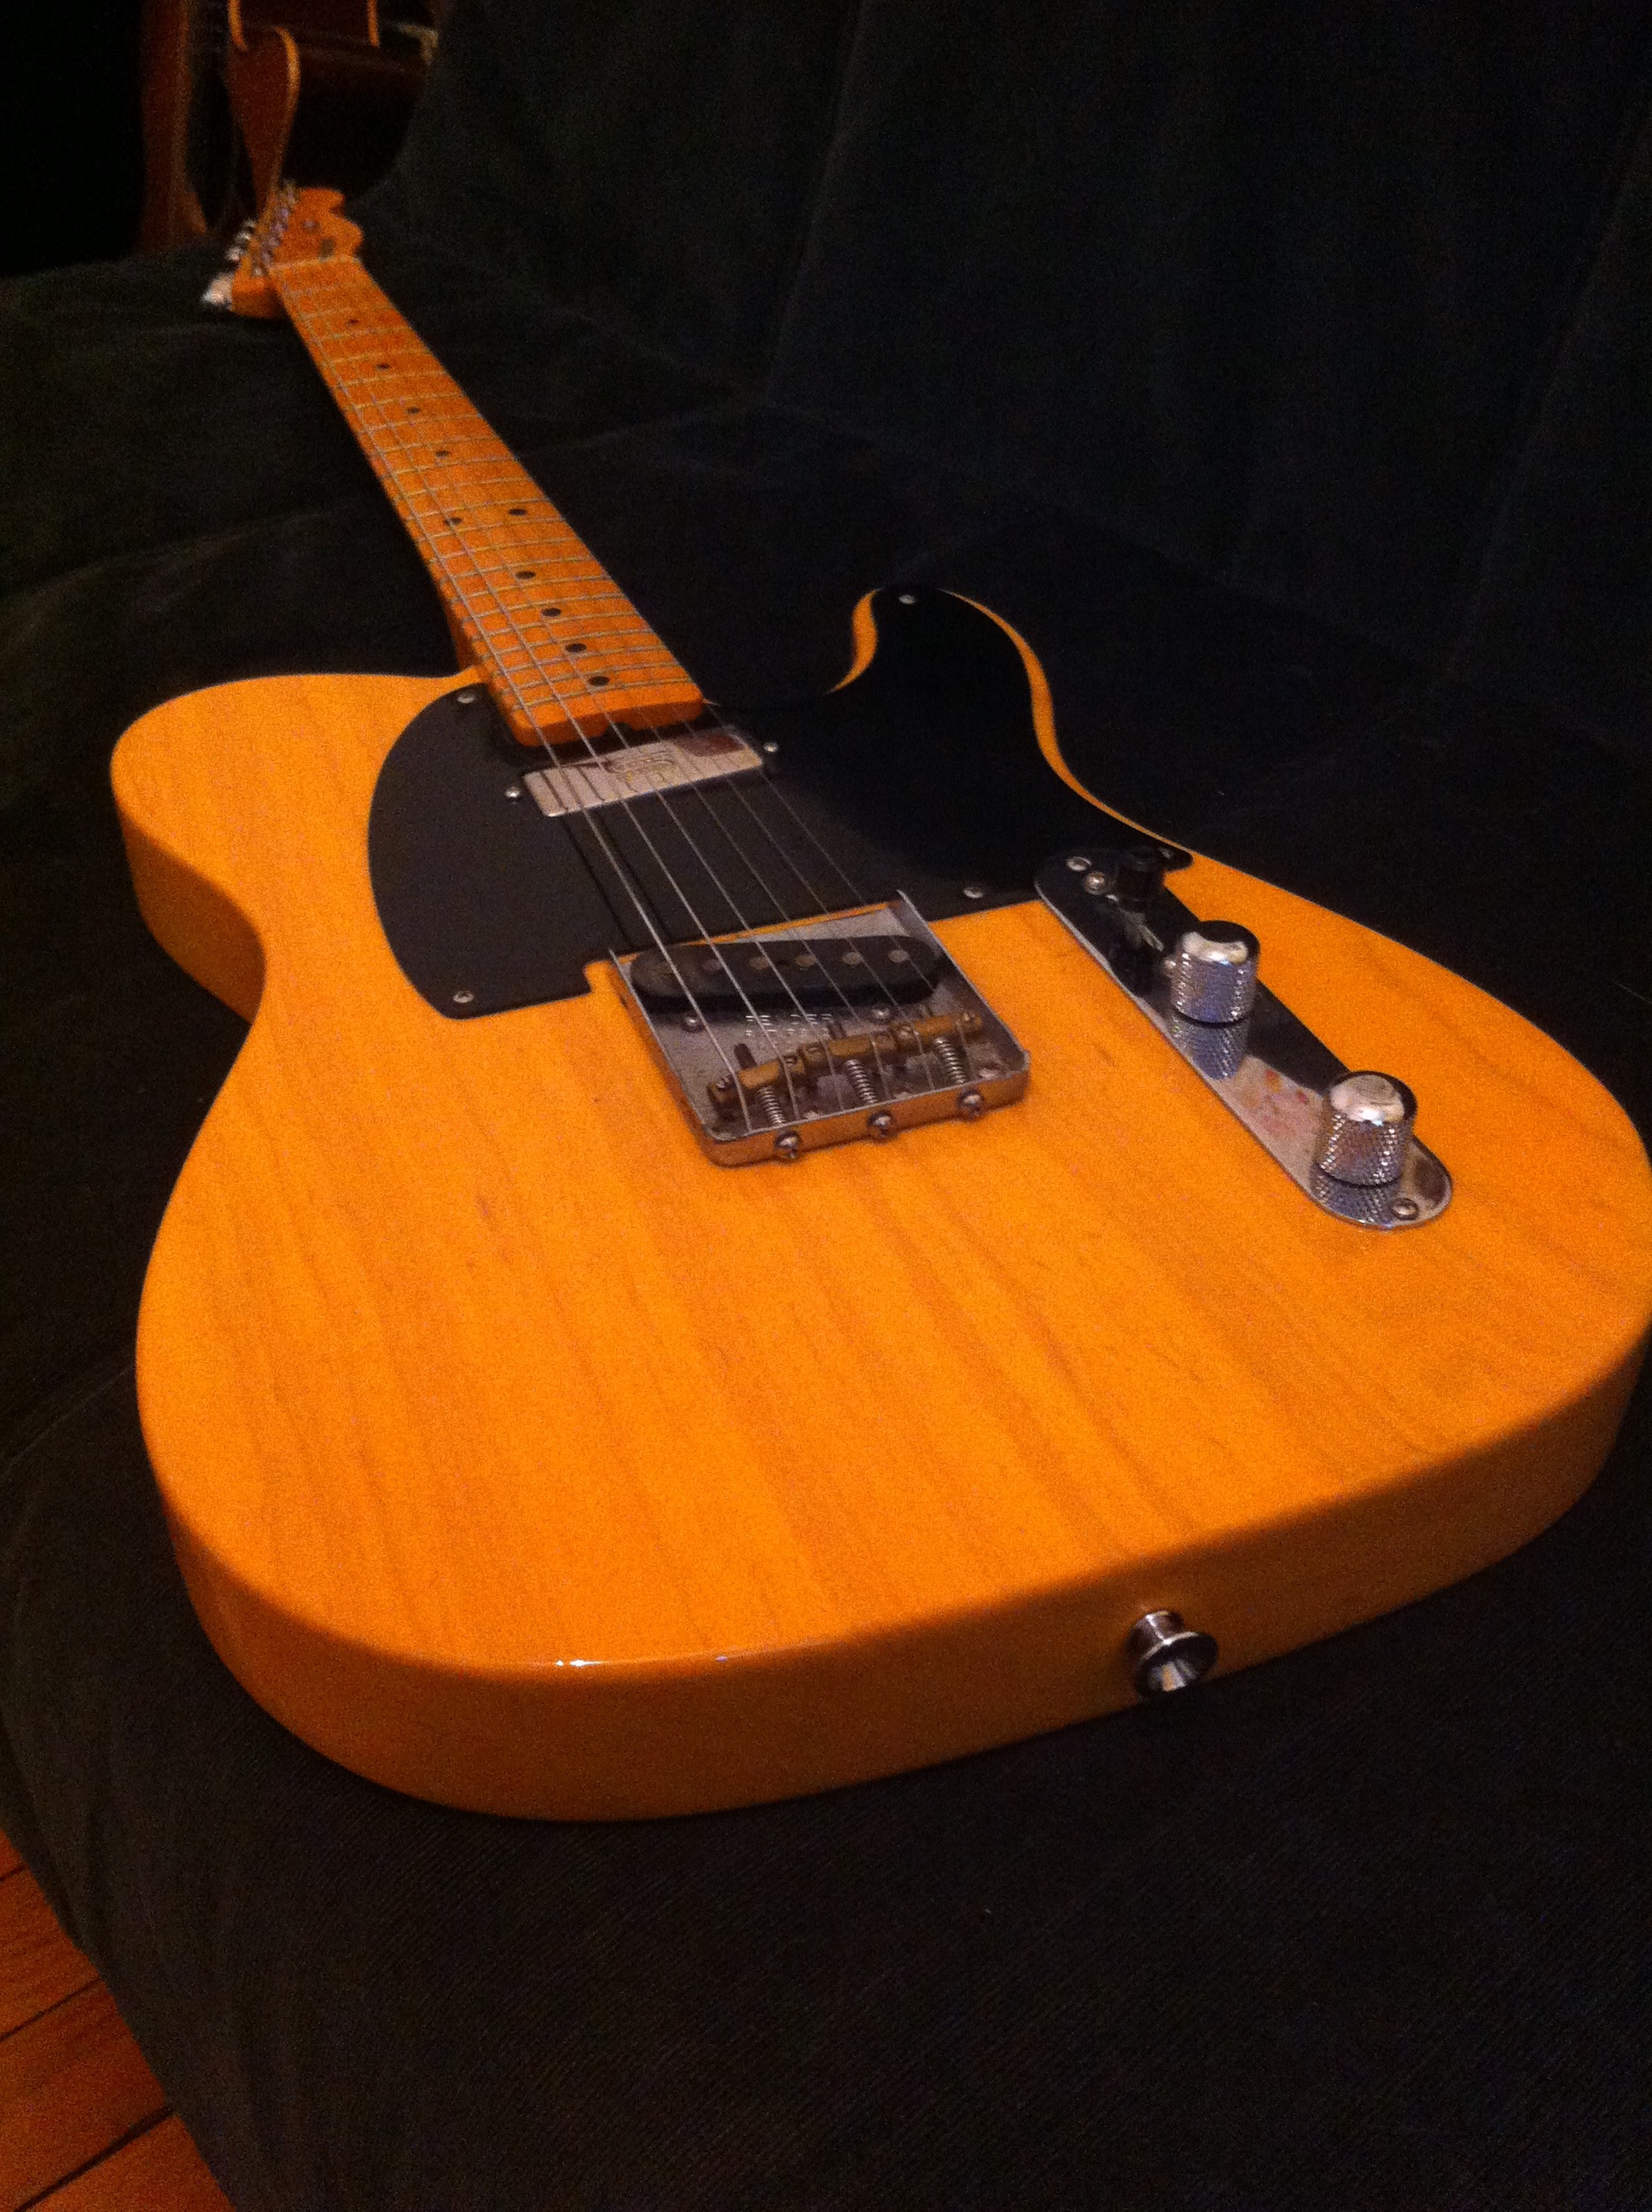 Fender Vintage Hot Rod 52 Telecaster The Gear Page